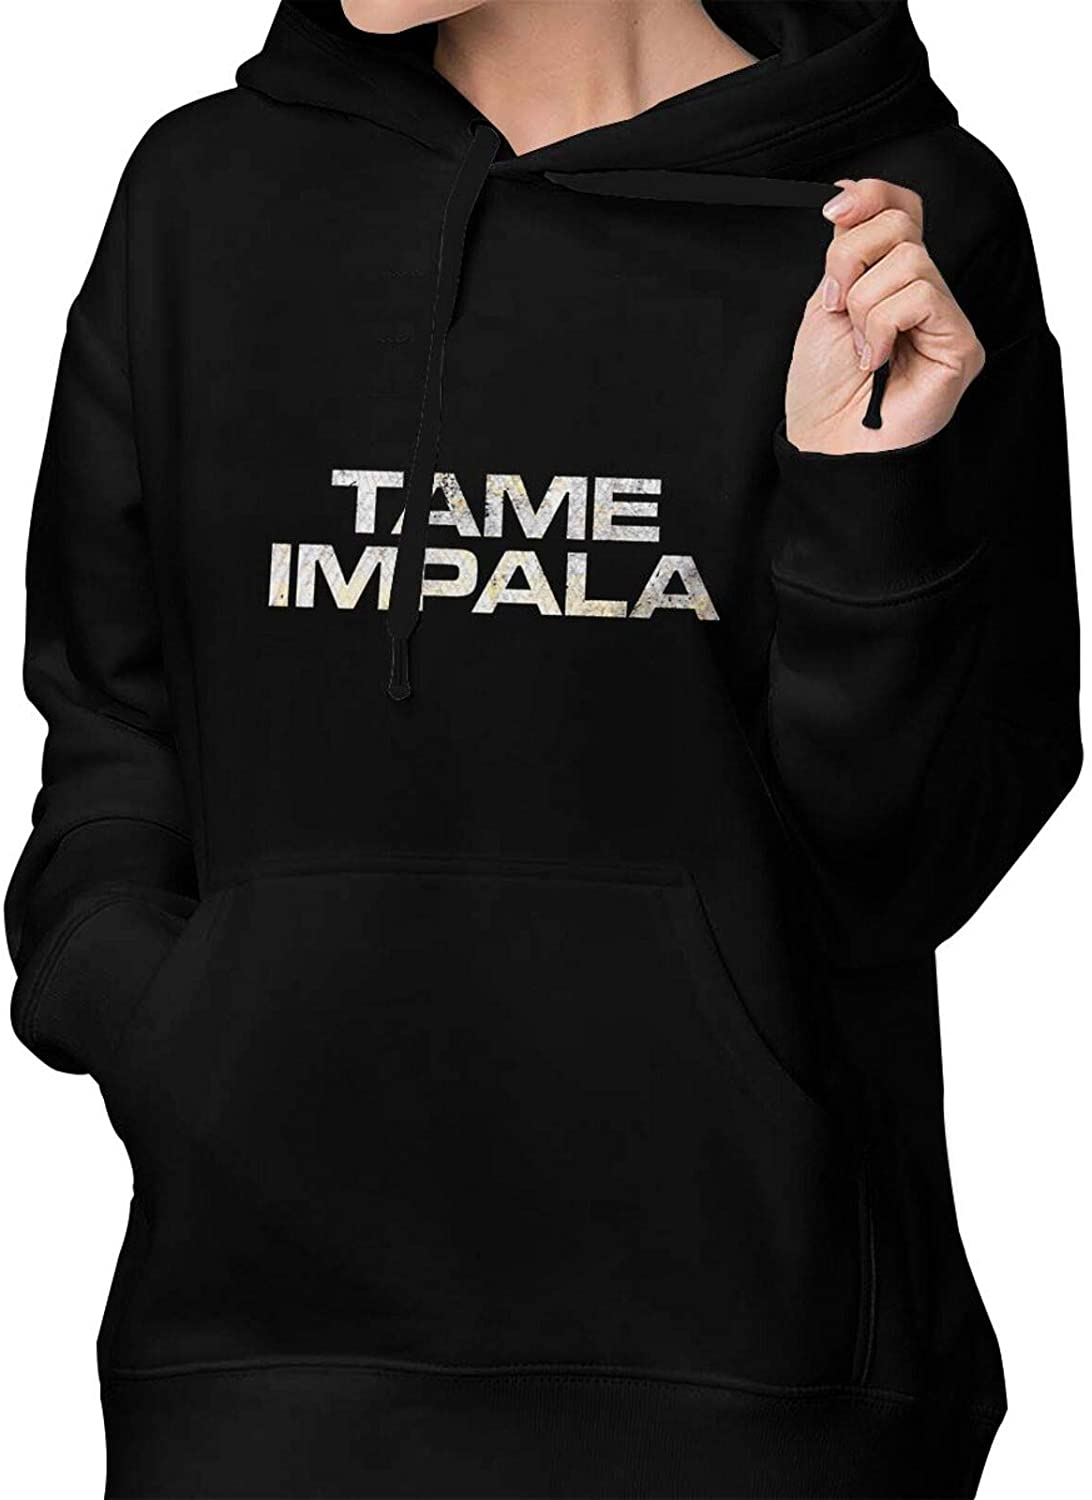 AP.Room Tame Impala Women's Fashion Hoodie Pullover Cotton Sweatshirt Front Pocket